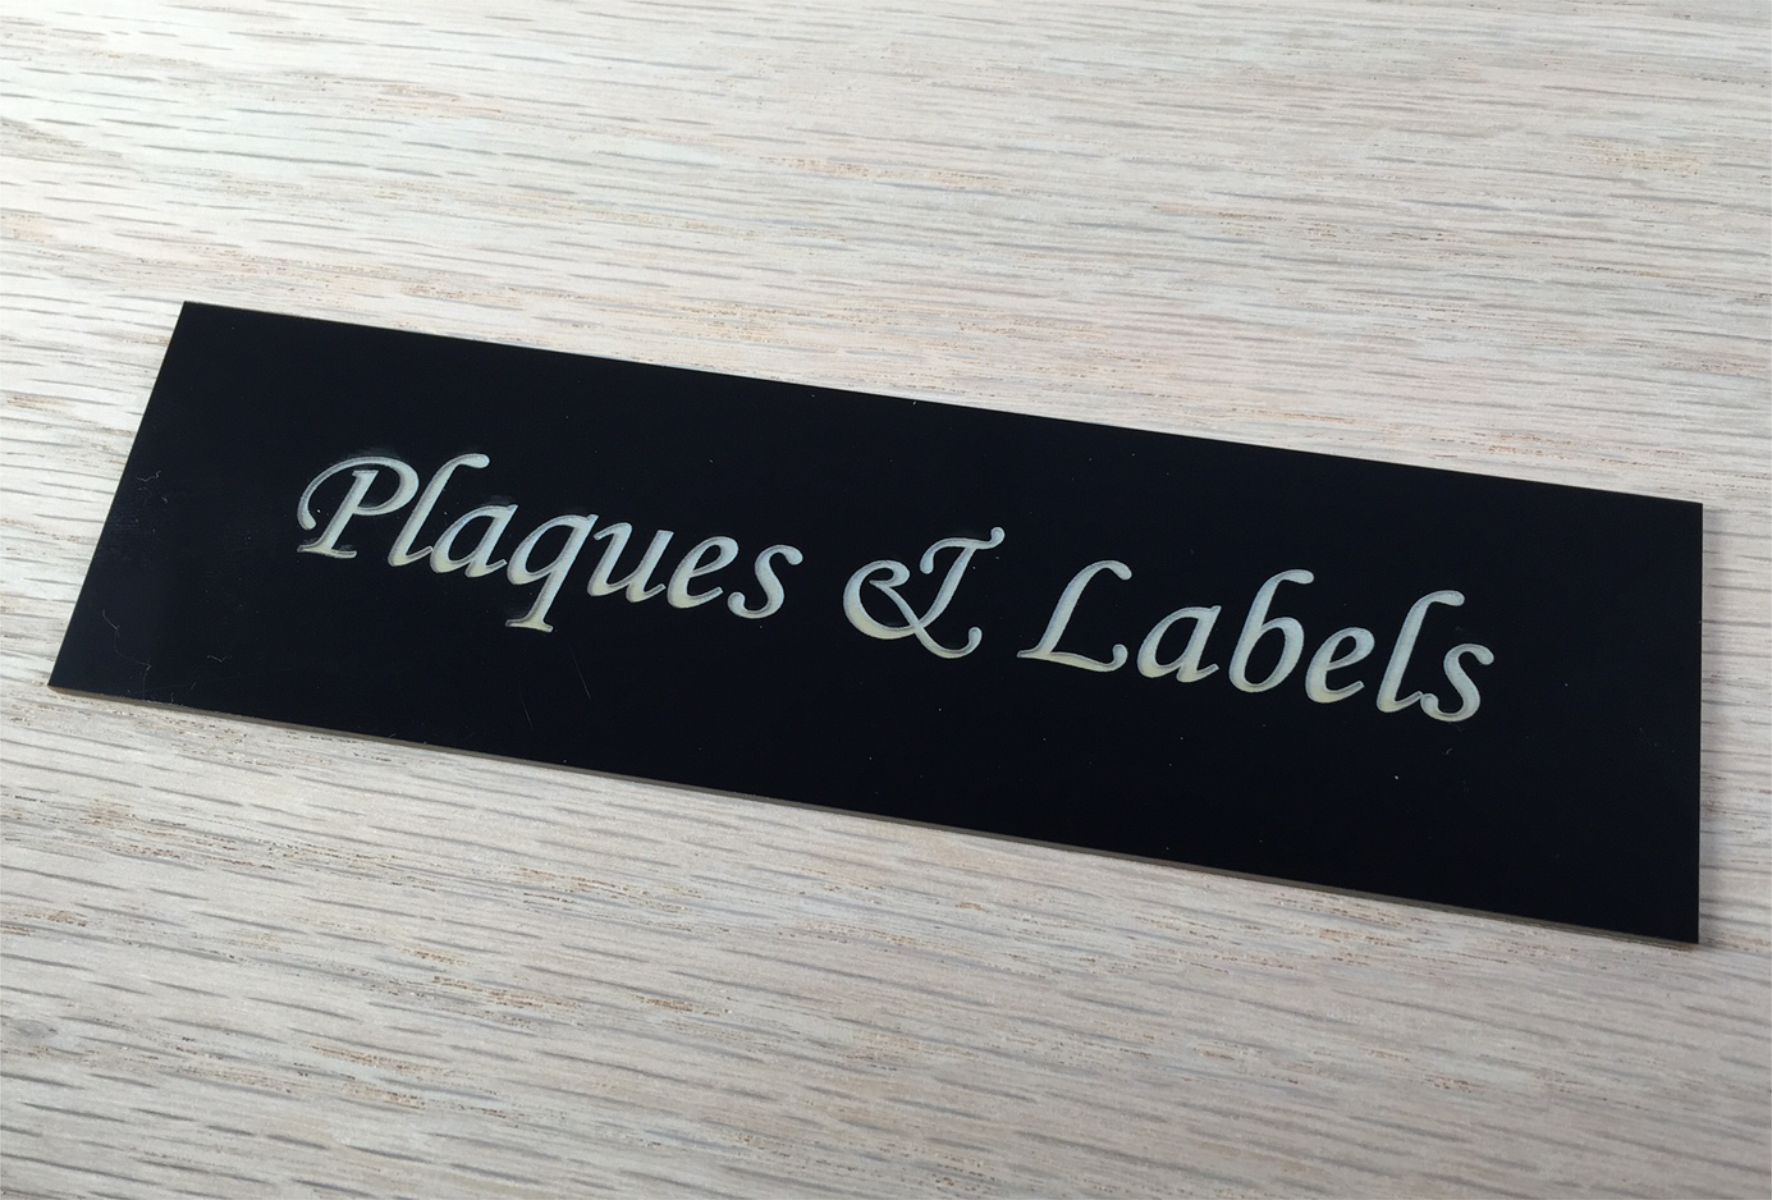 Plaques & labels made from top quality laser engraving materials